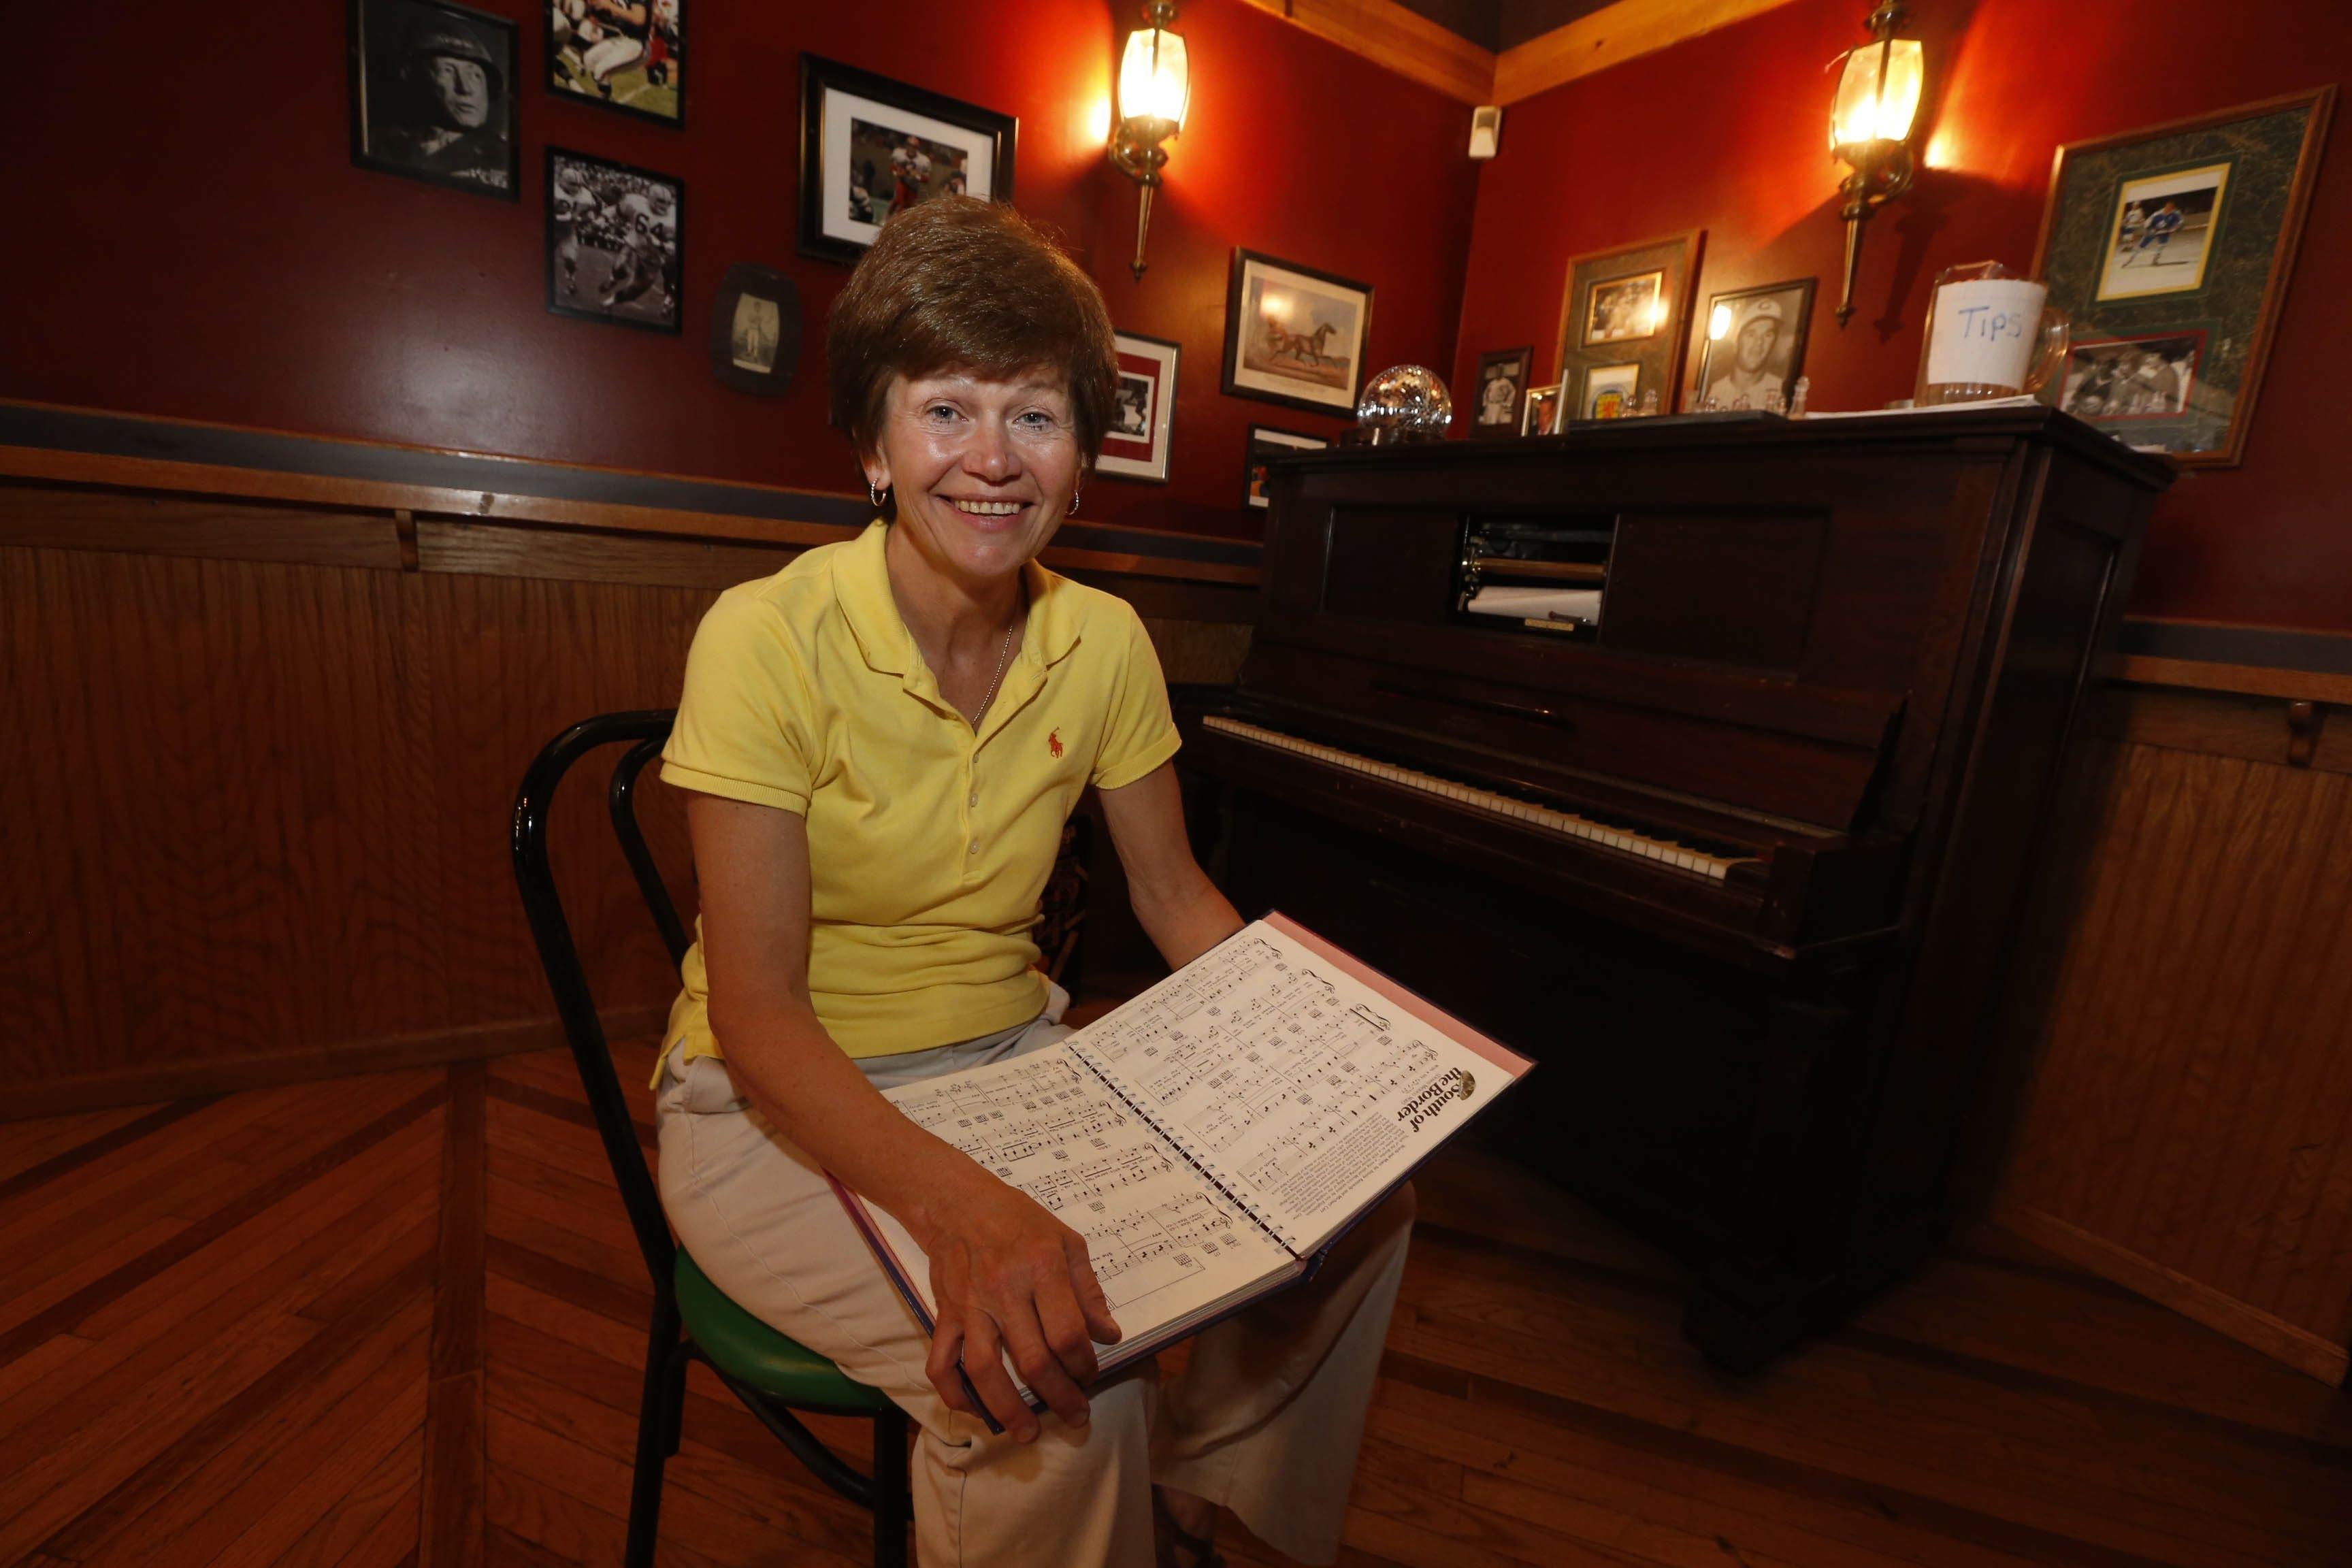 Claudia Andres looks over some sheet music in the Mug and Musket, the Youngstown restaurant she and her partner opened on Labor Day weekend.